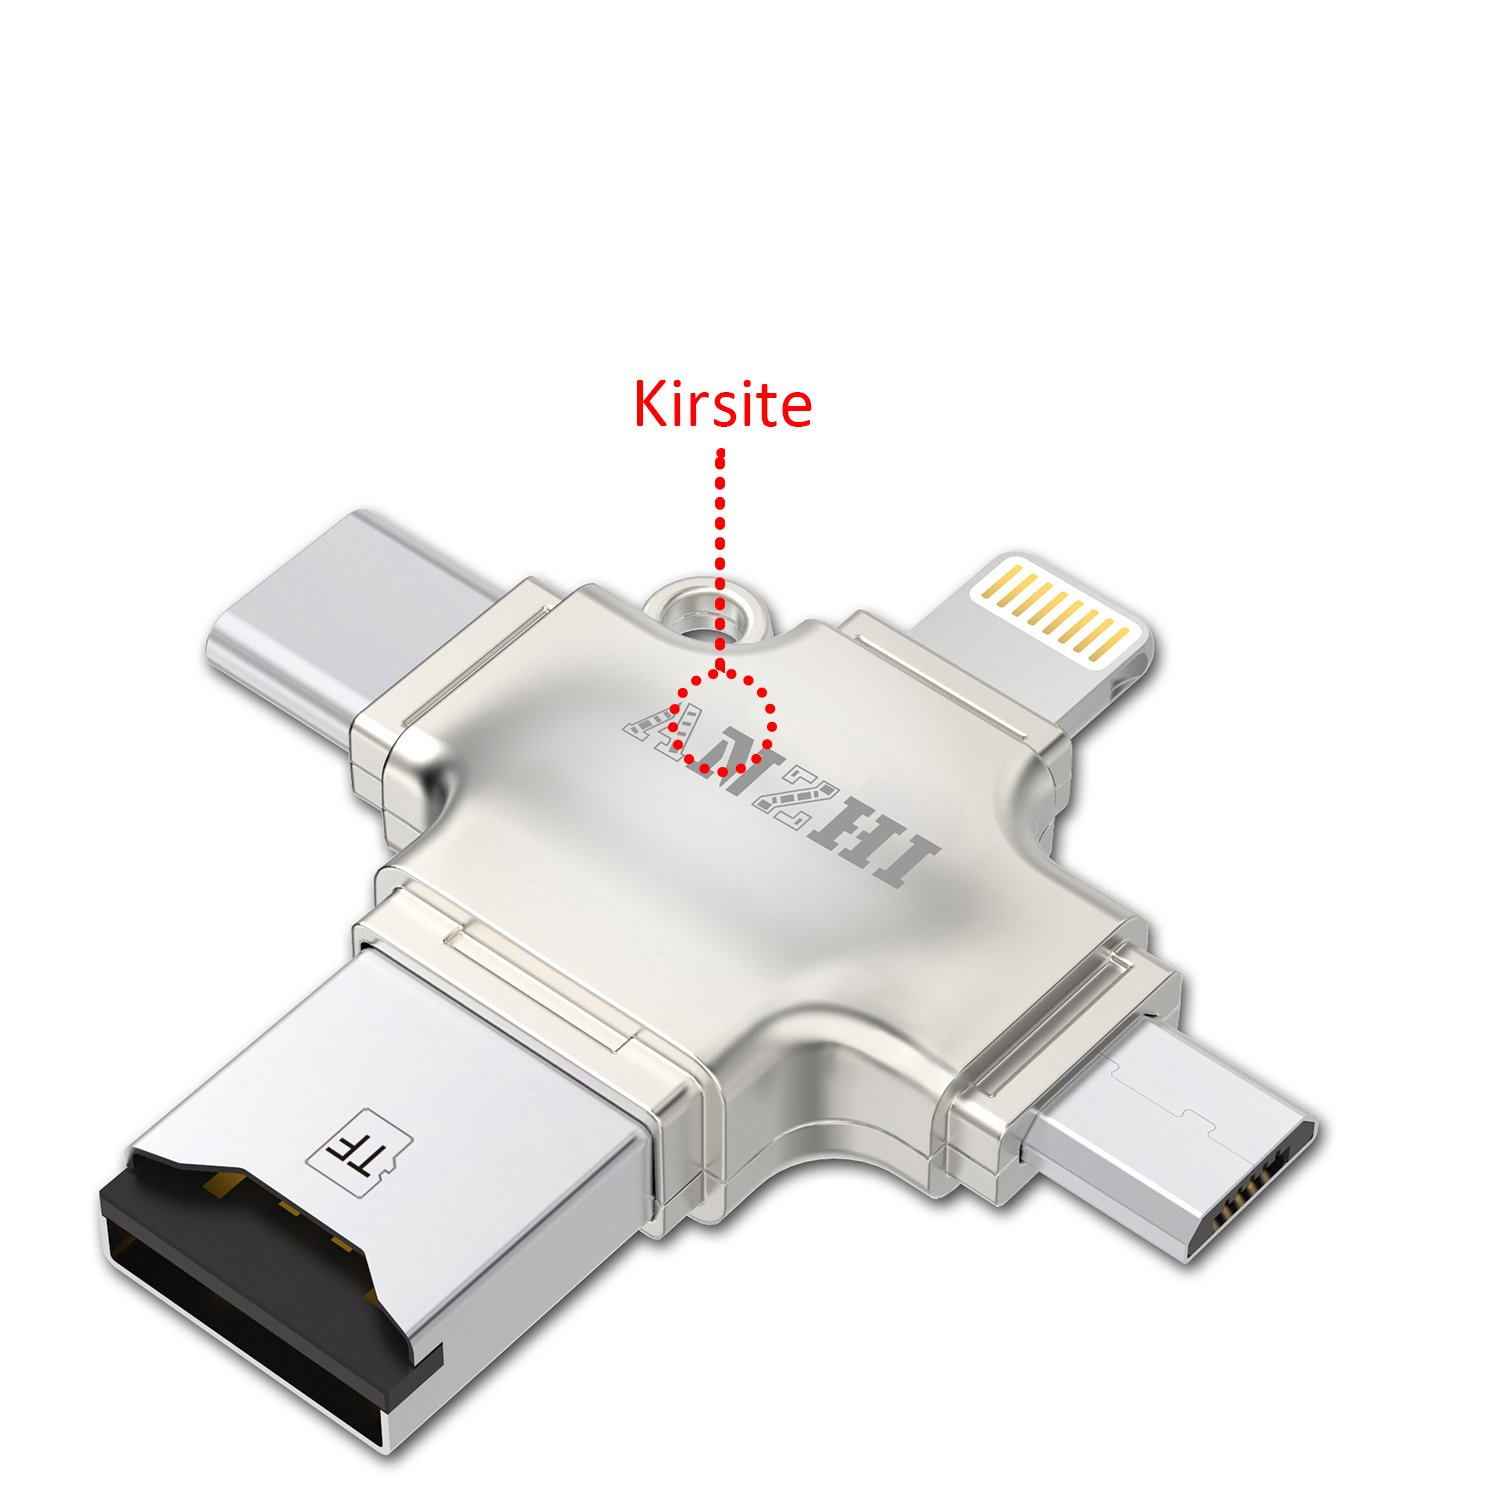 Anzhi Metal Shell 4 In 1 Micro Sd Tf Card Reader Thermostat Wiring Diagram Free Picture Not Included With Lightning Usb Type C 20 A For Iphone Ipad Android